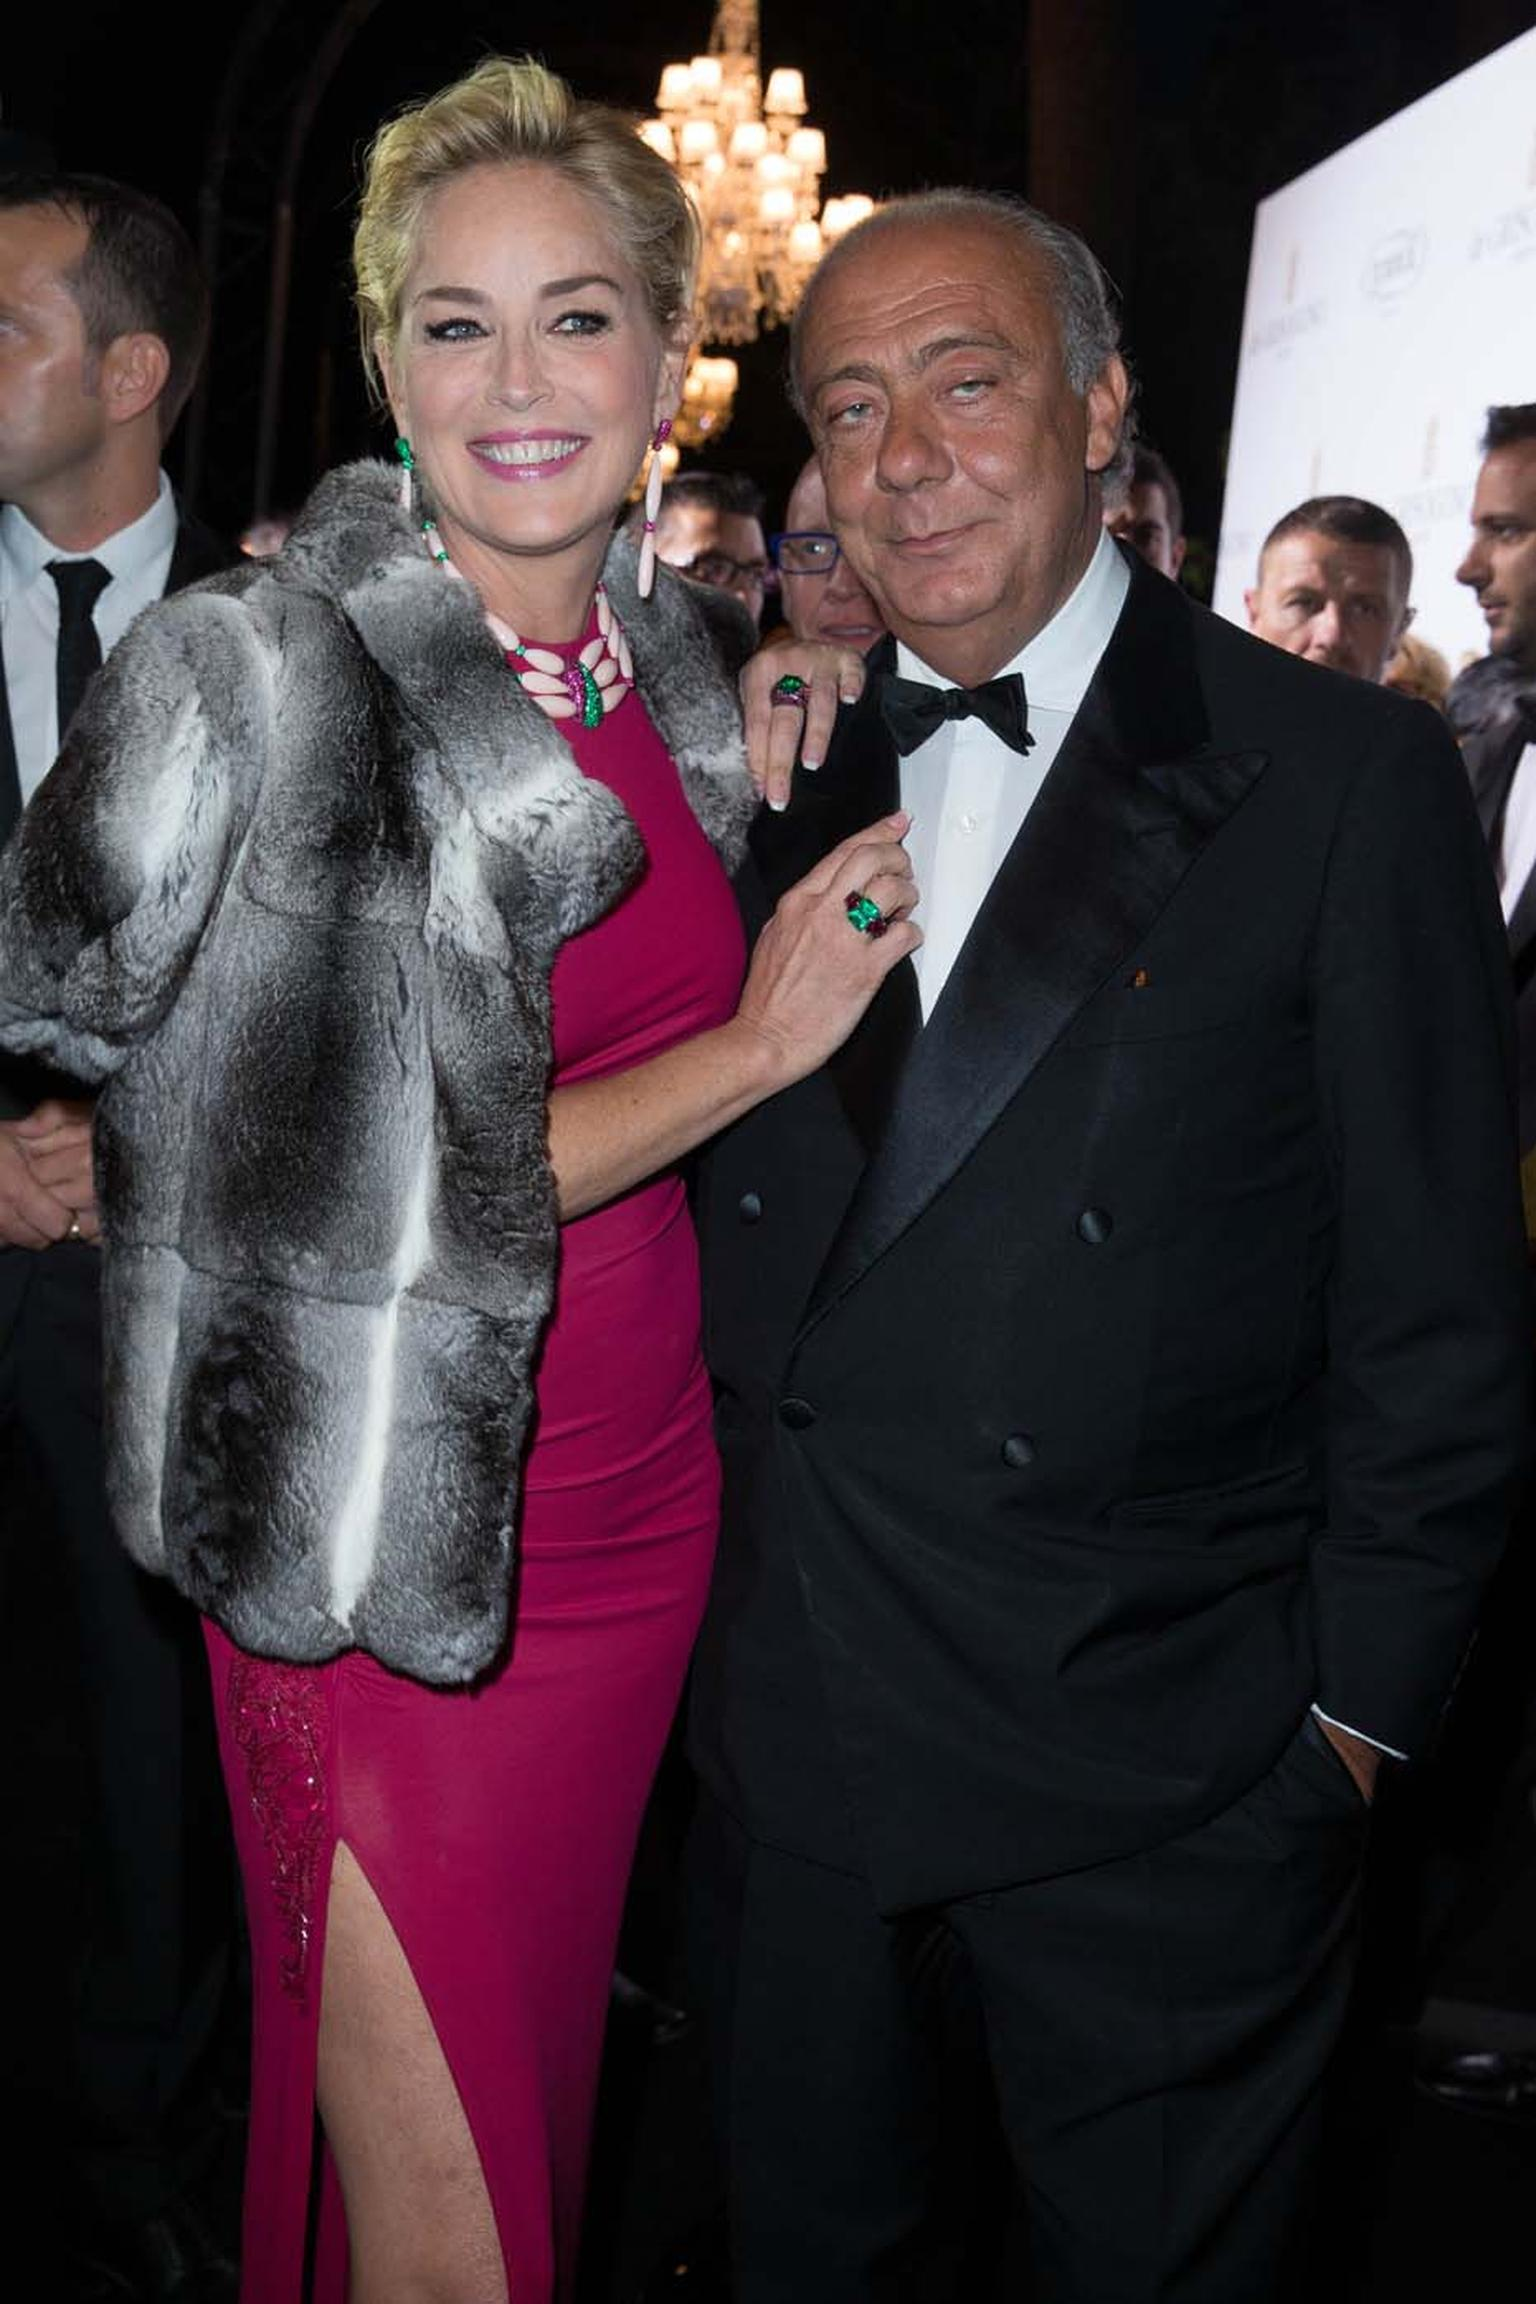 Posing with de GRISOGONO's founder Fawaz Gruosi, Sharon Stone shows off her evening's jewellery choices, which included a three-strand de GRISOGONO coral necklace and matching earrings